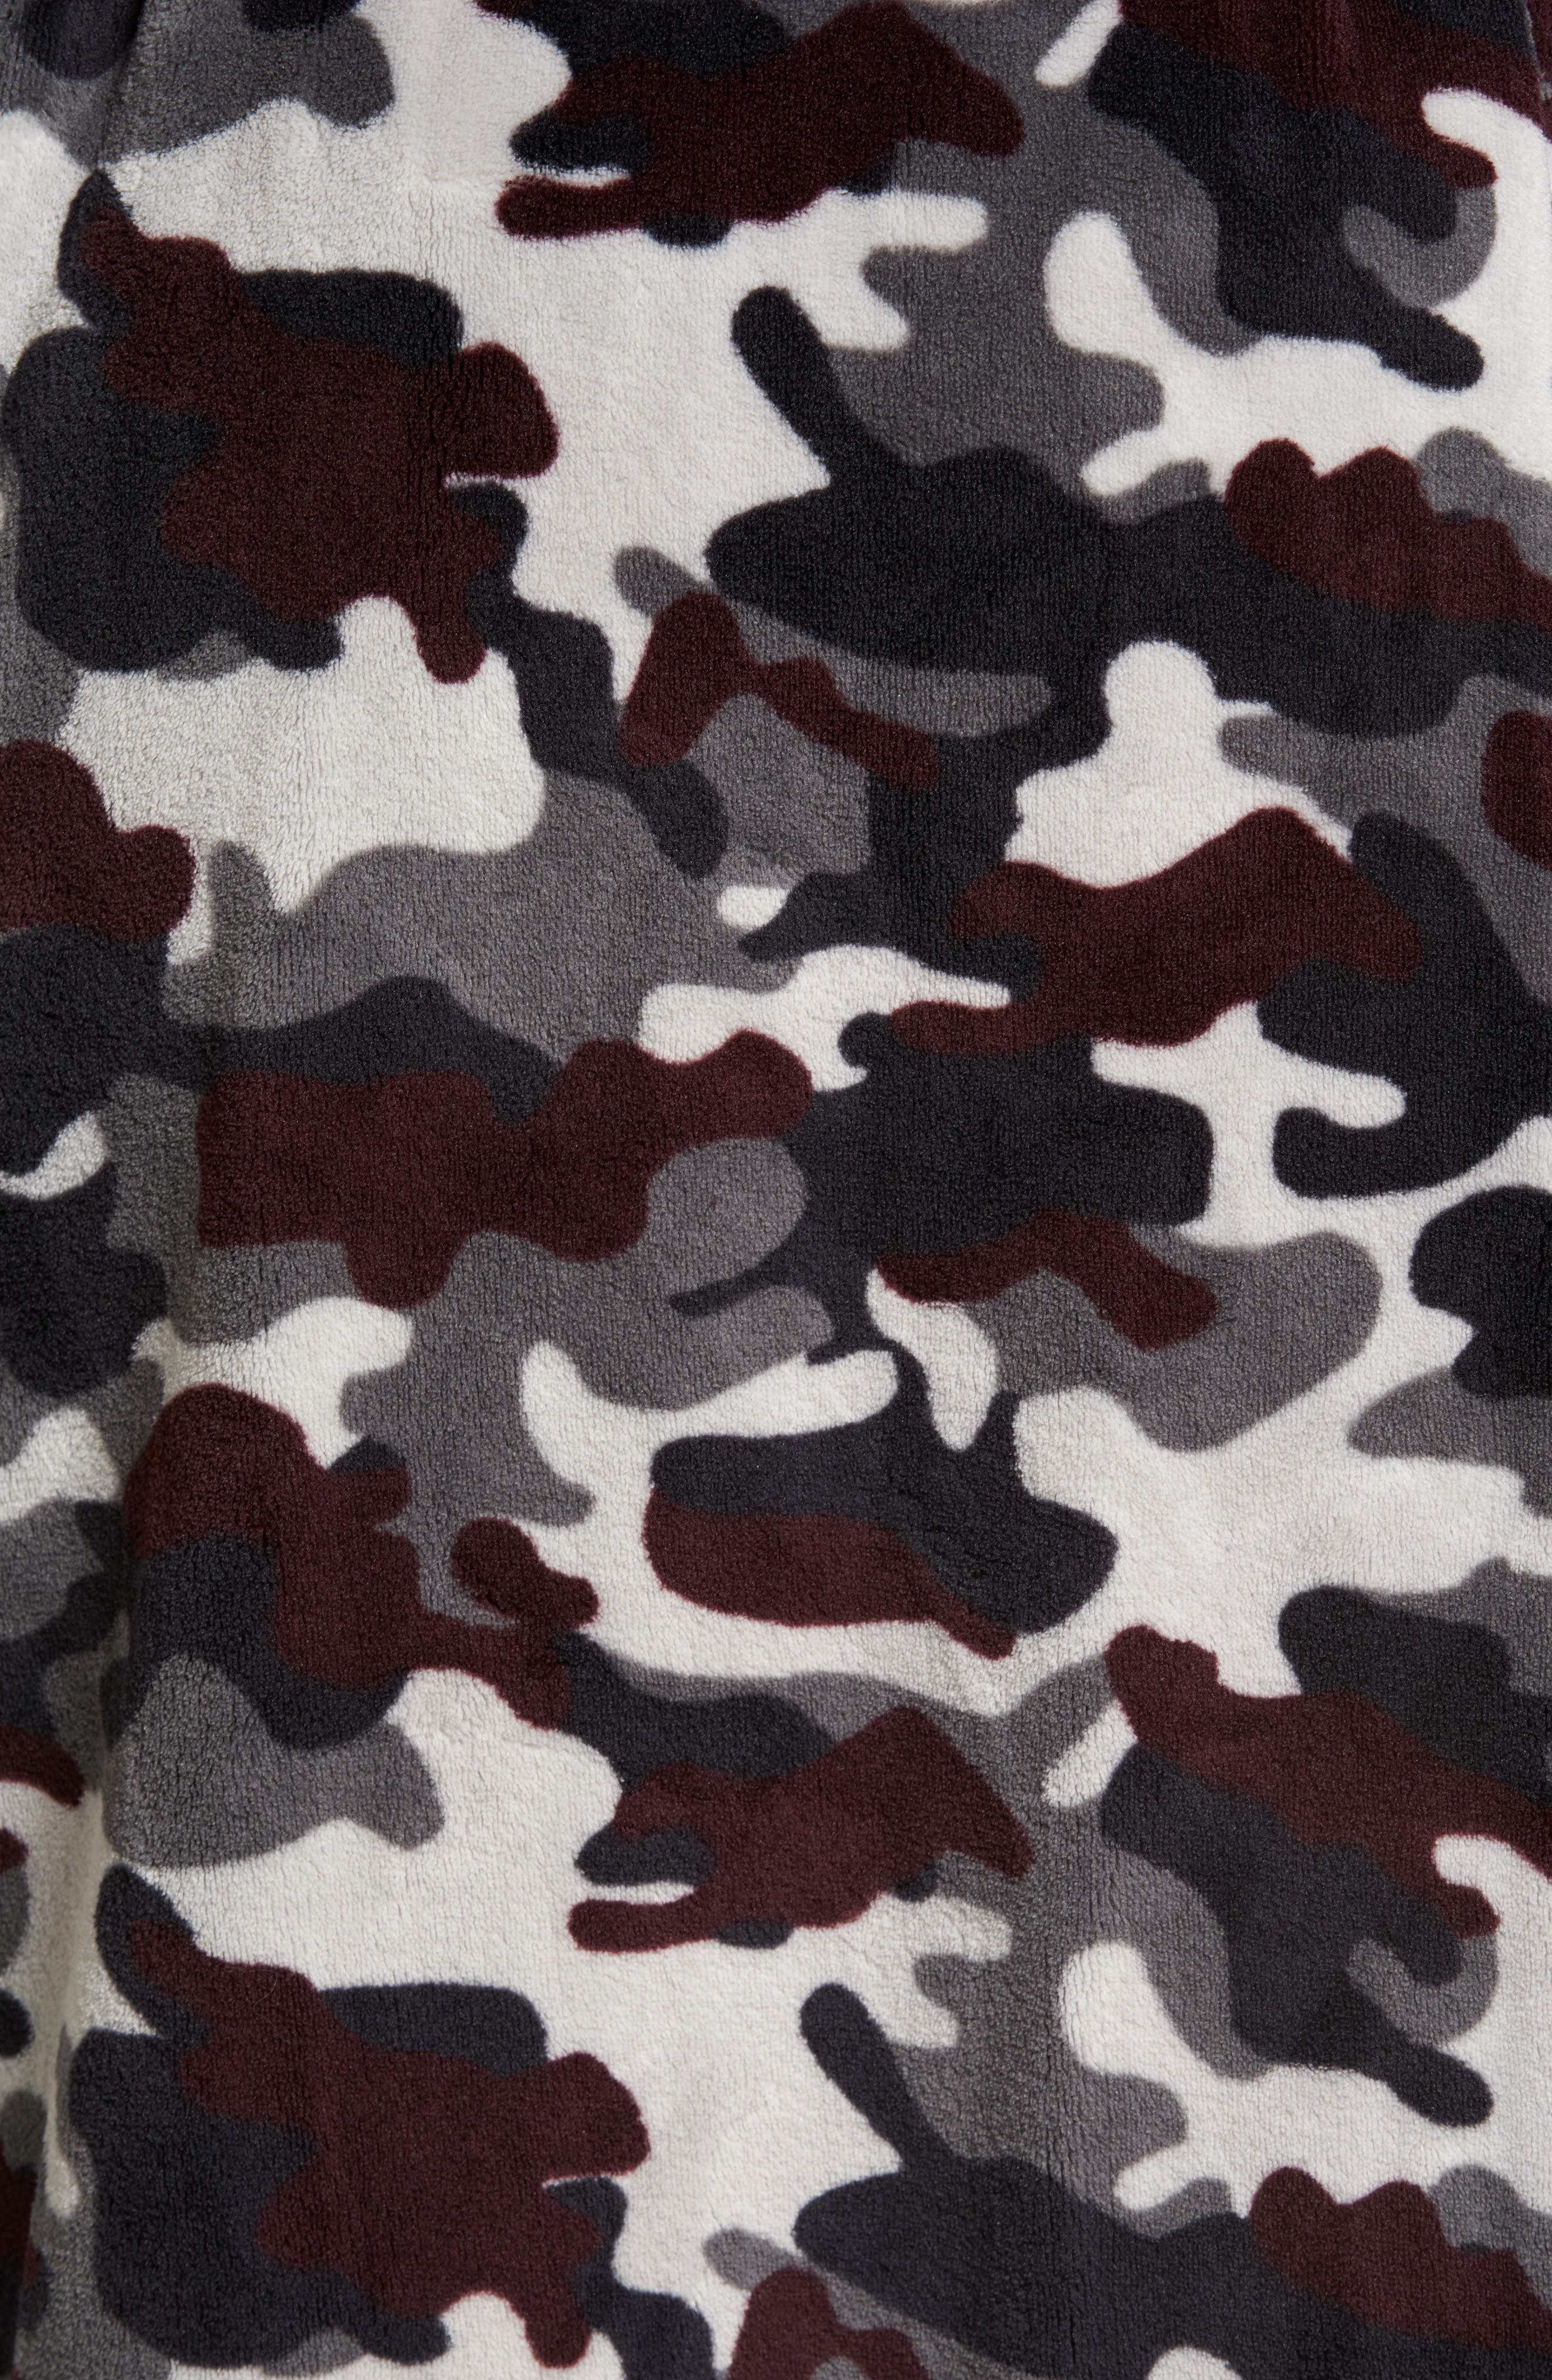 Cold Conquest Robe,                             Alternate thumbnail 5, color,                             Charcoal Camo